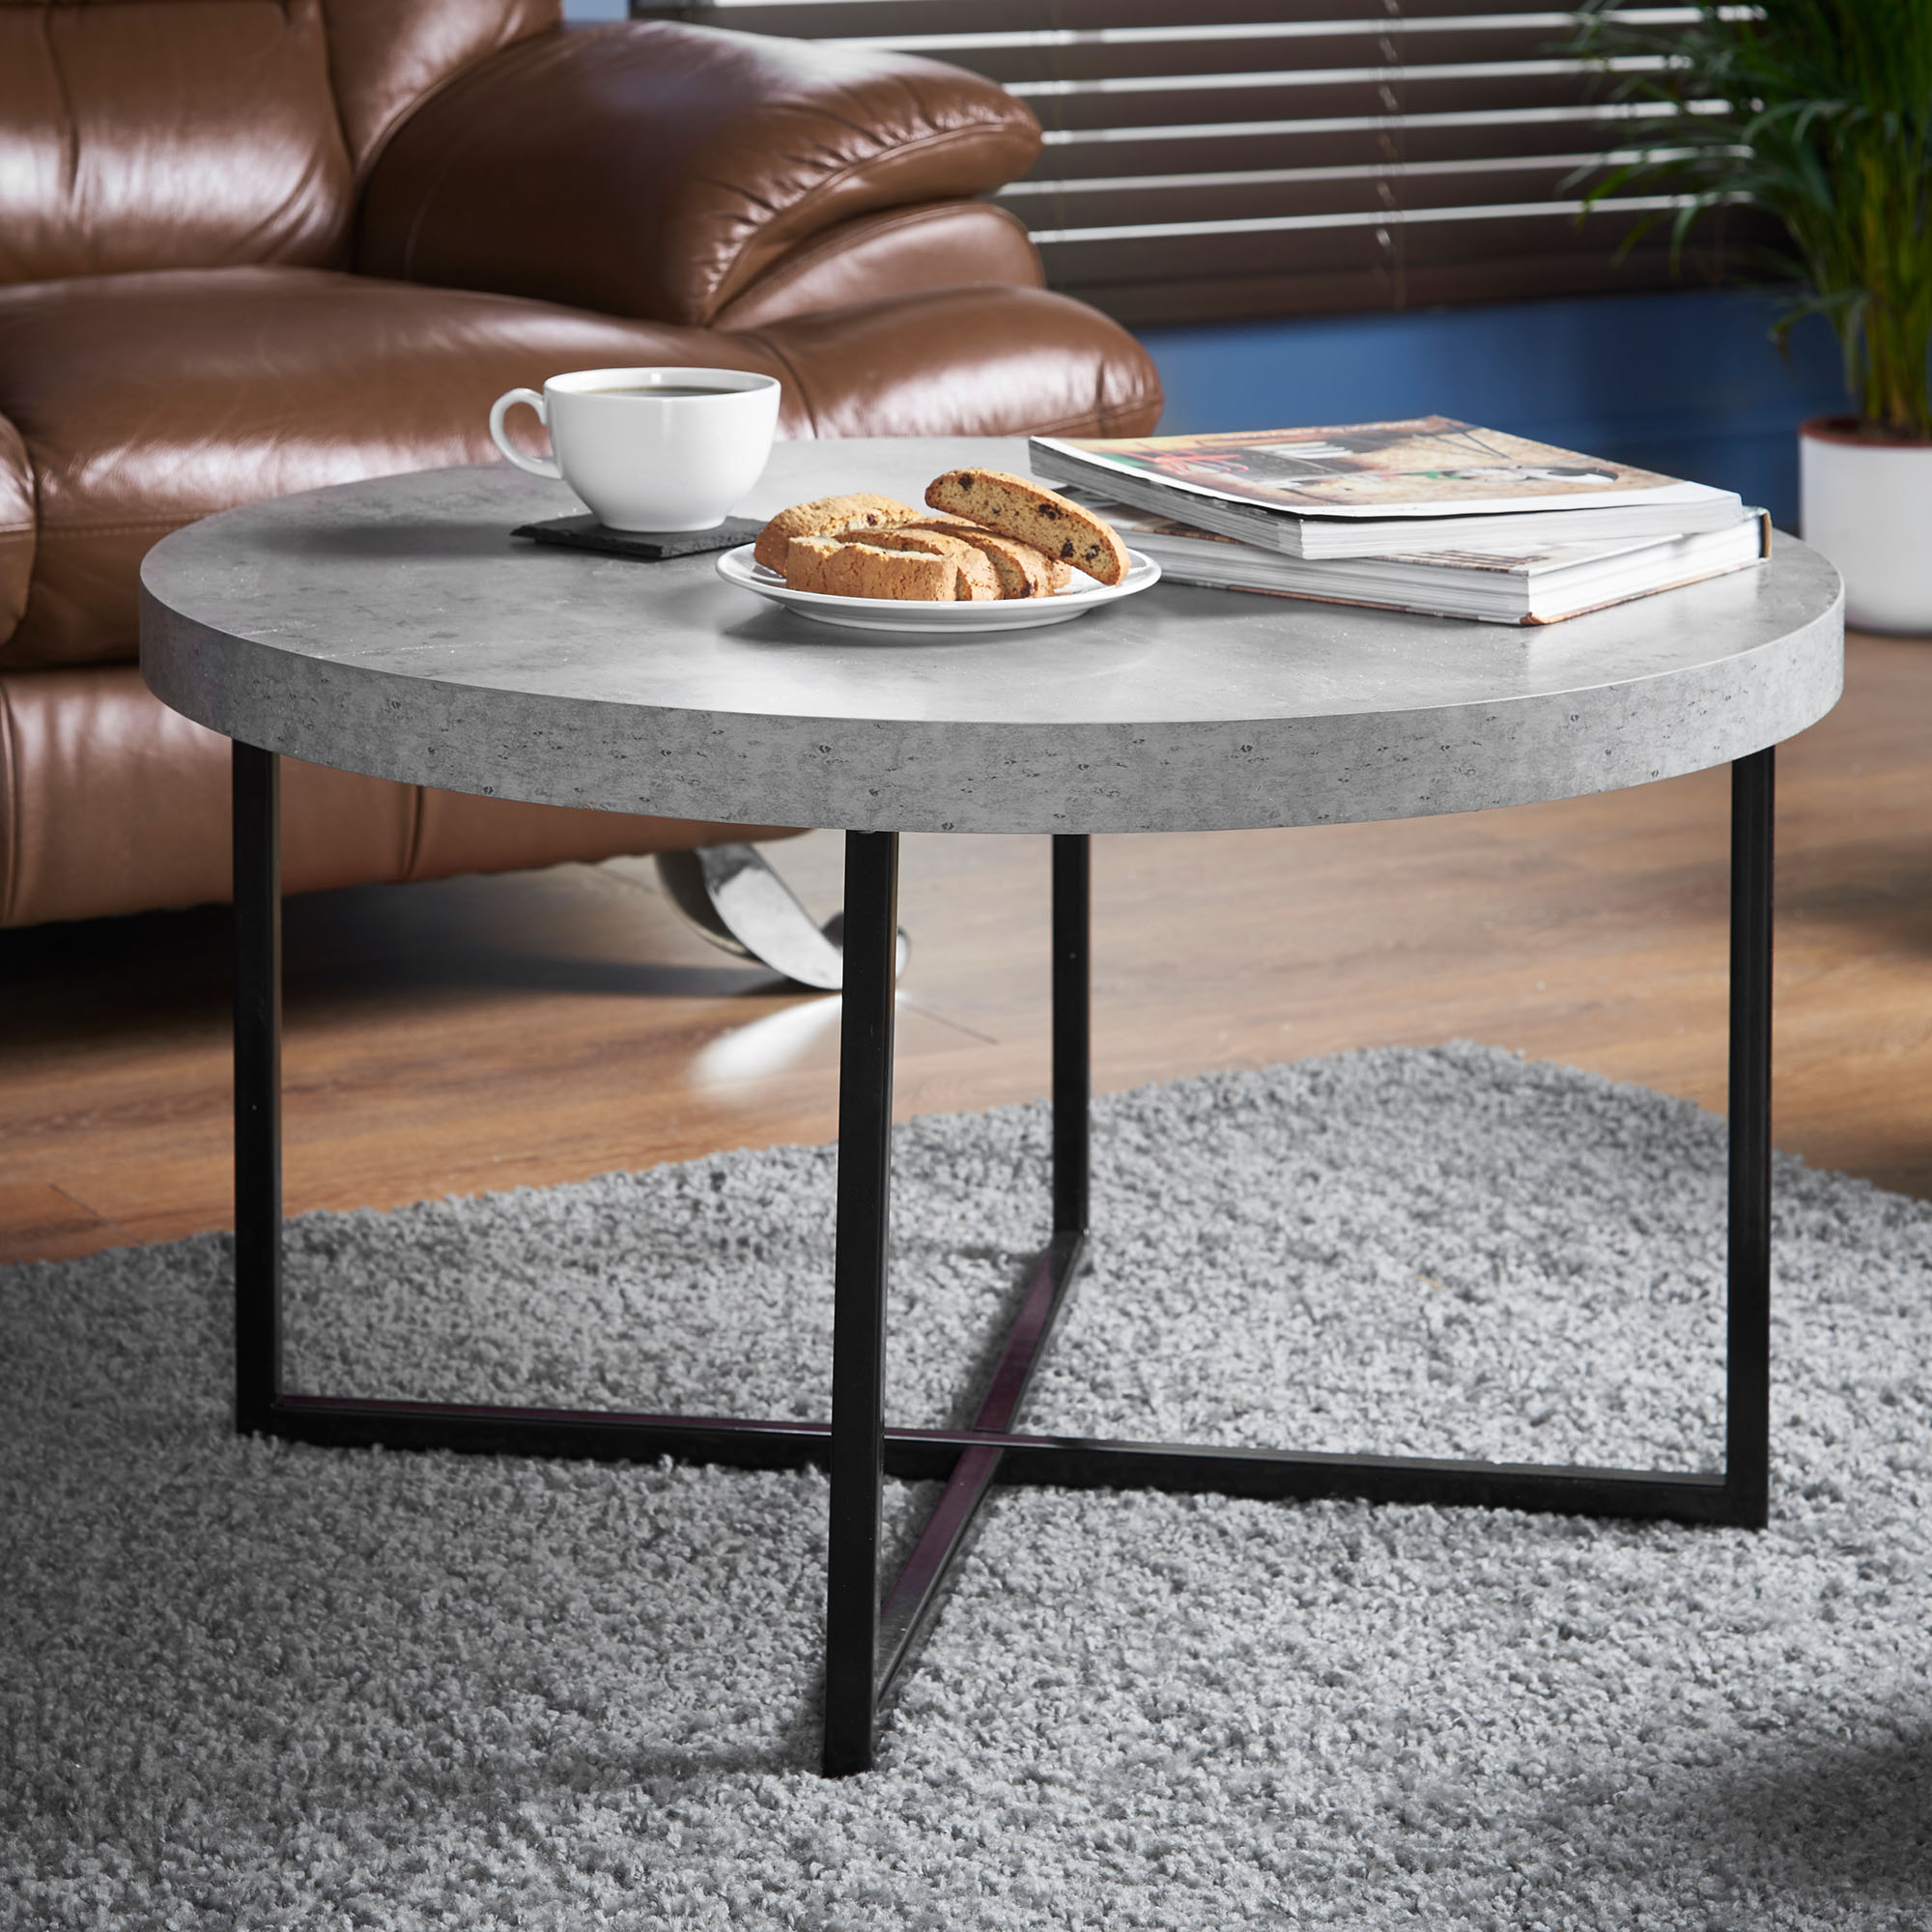 Sentinel Vonhaus Concrete Look Coffee Table Contemporary Style With Lightweight Metal Effect Legs